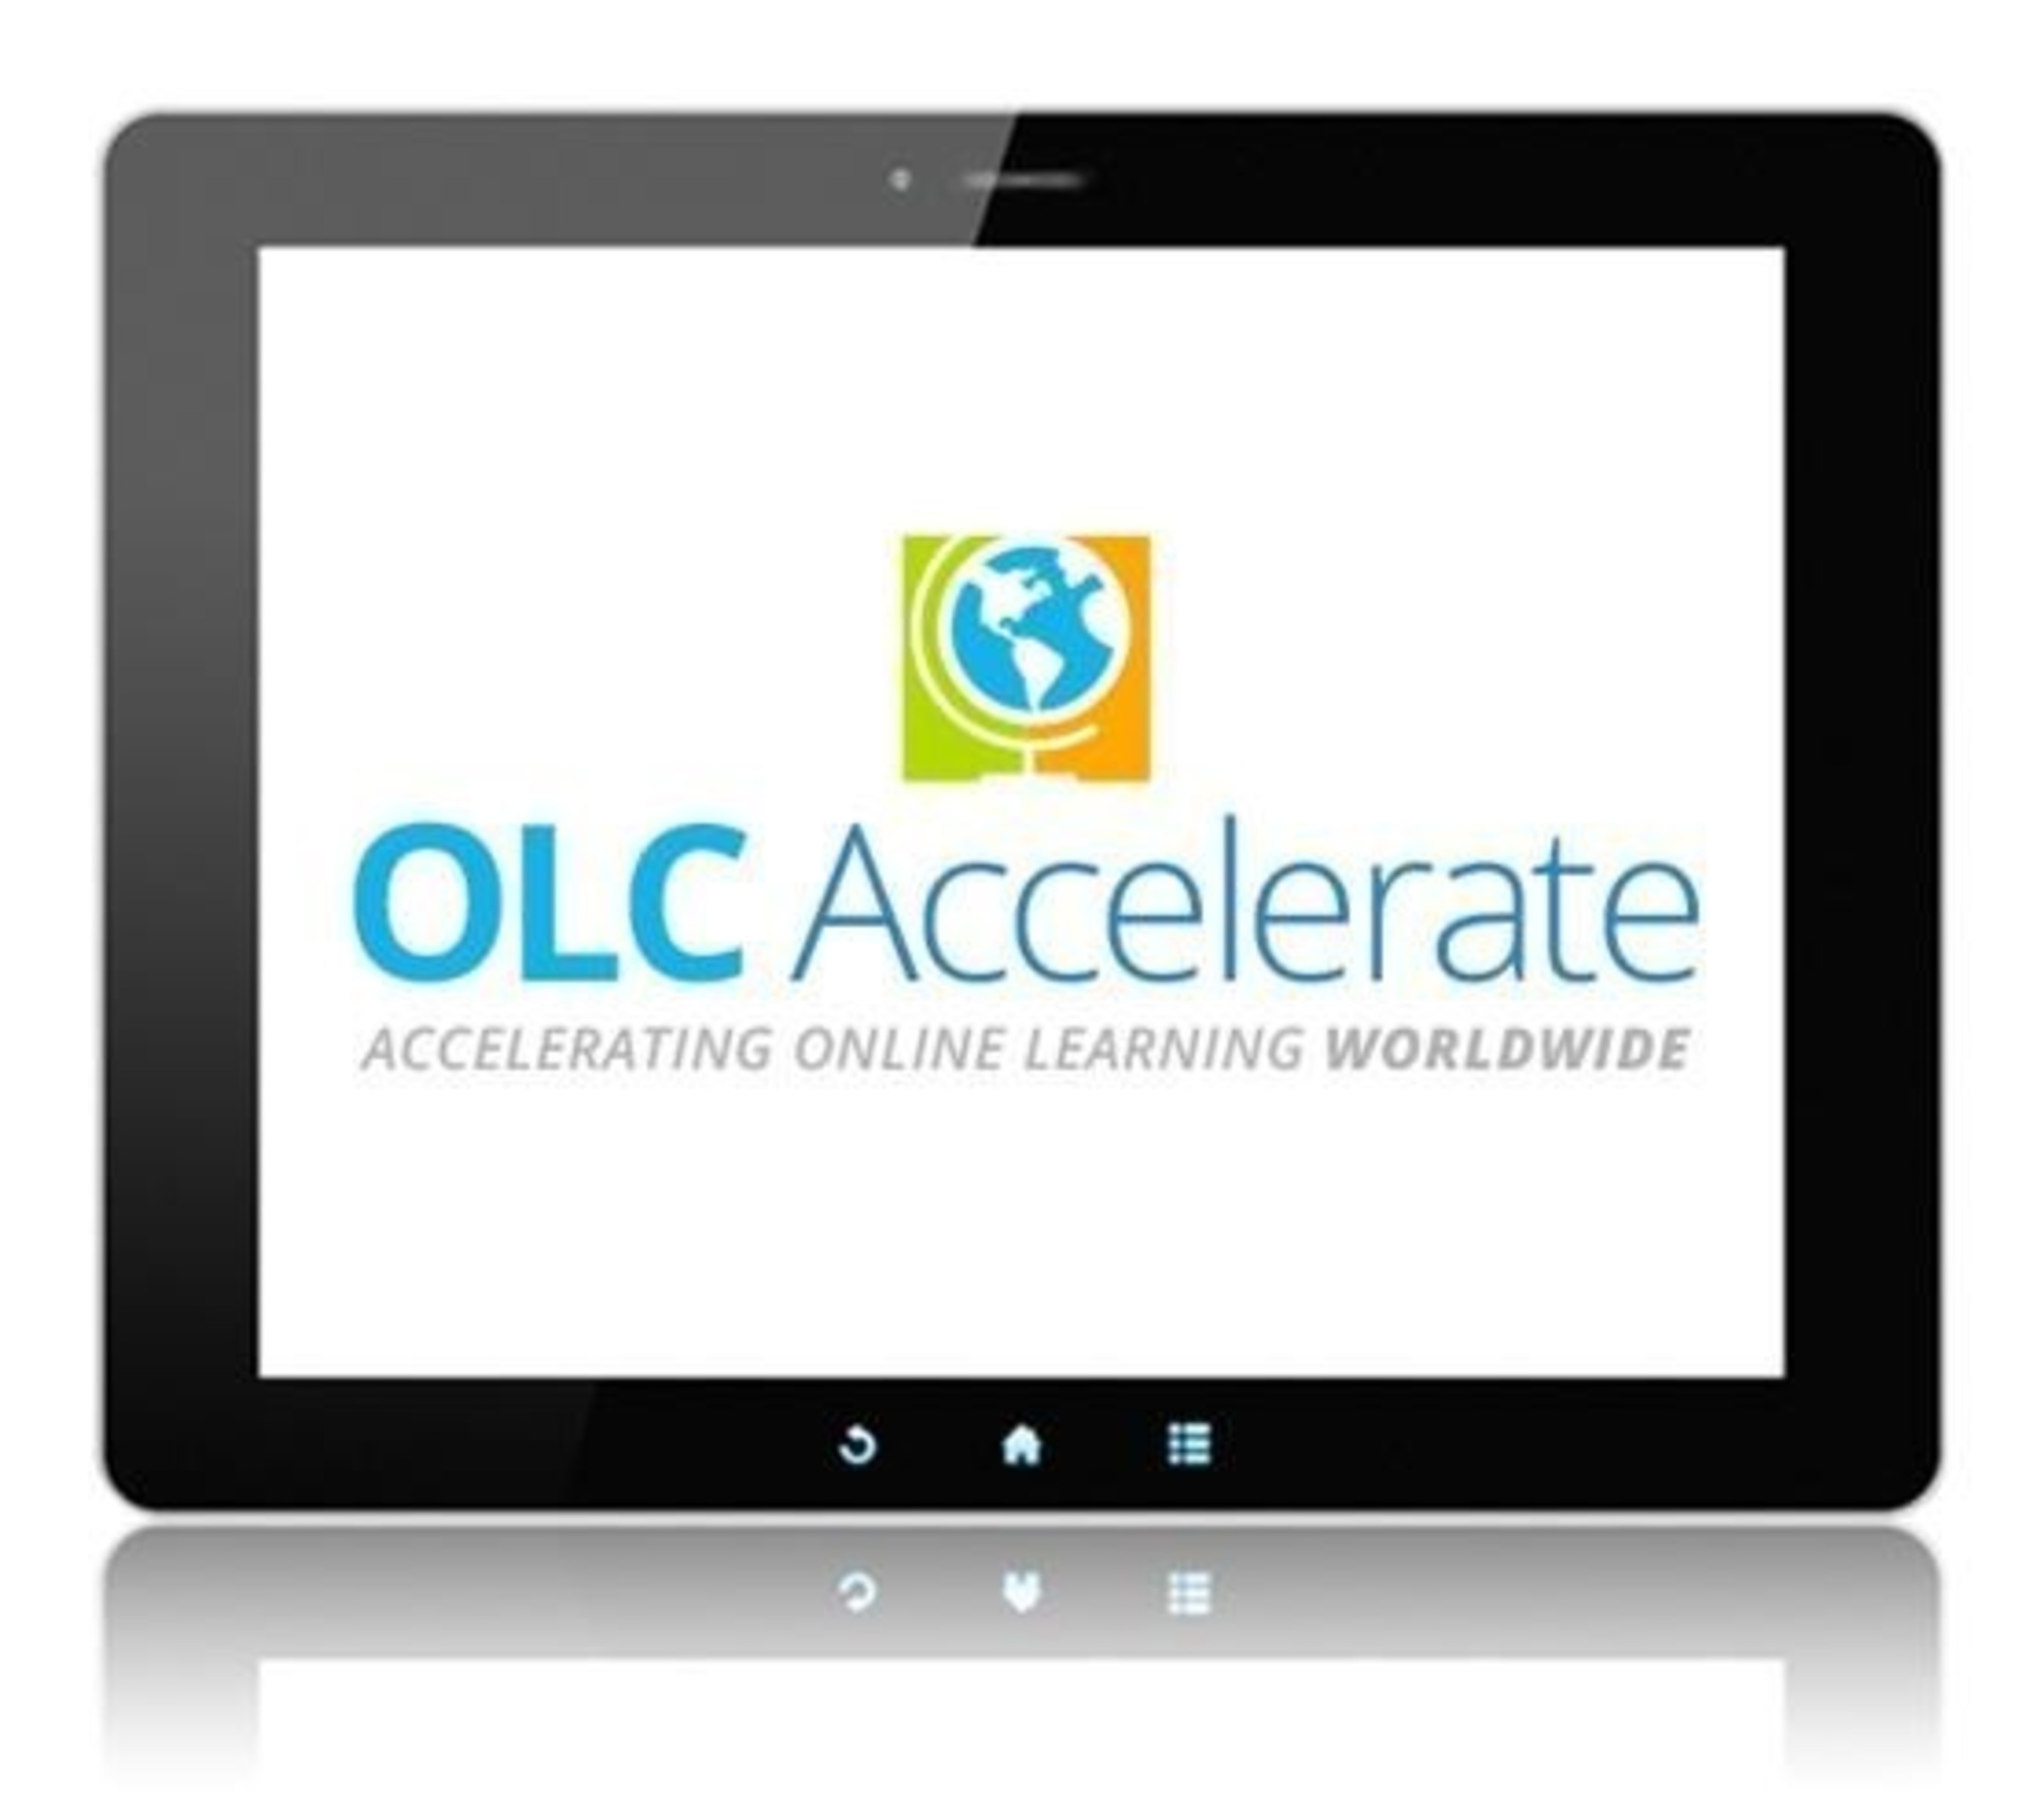 Online Learning Consortium Announces Best-in-Strand Sessions for #OLCAccelerate, Taking Place Nov. 16-18, in Orlando